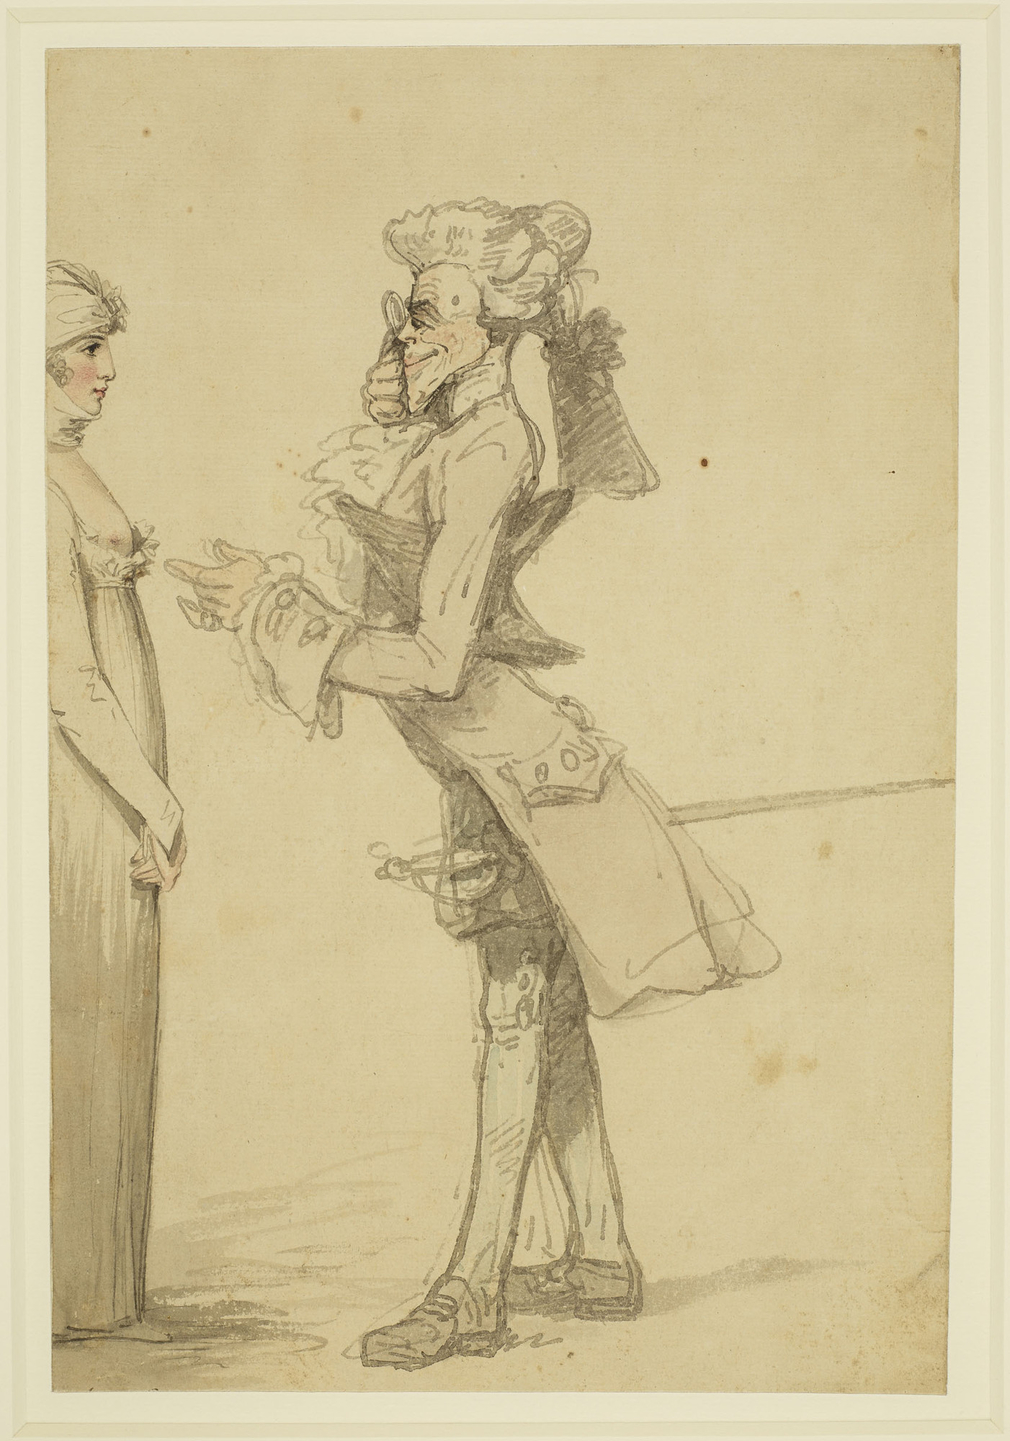 A pen and watercolour of a lascivious connoisseur avidly examining a female beauty with the aid of his eye glass. The man wears a wig and frock coat and carries a sword. The woman stands in right profile and with her hands in front of her, impassively ret